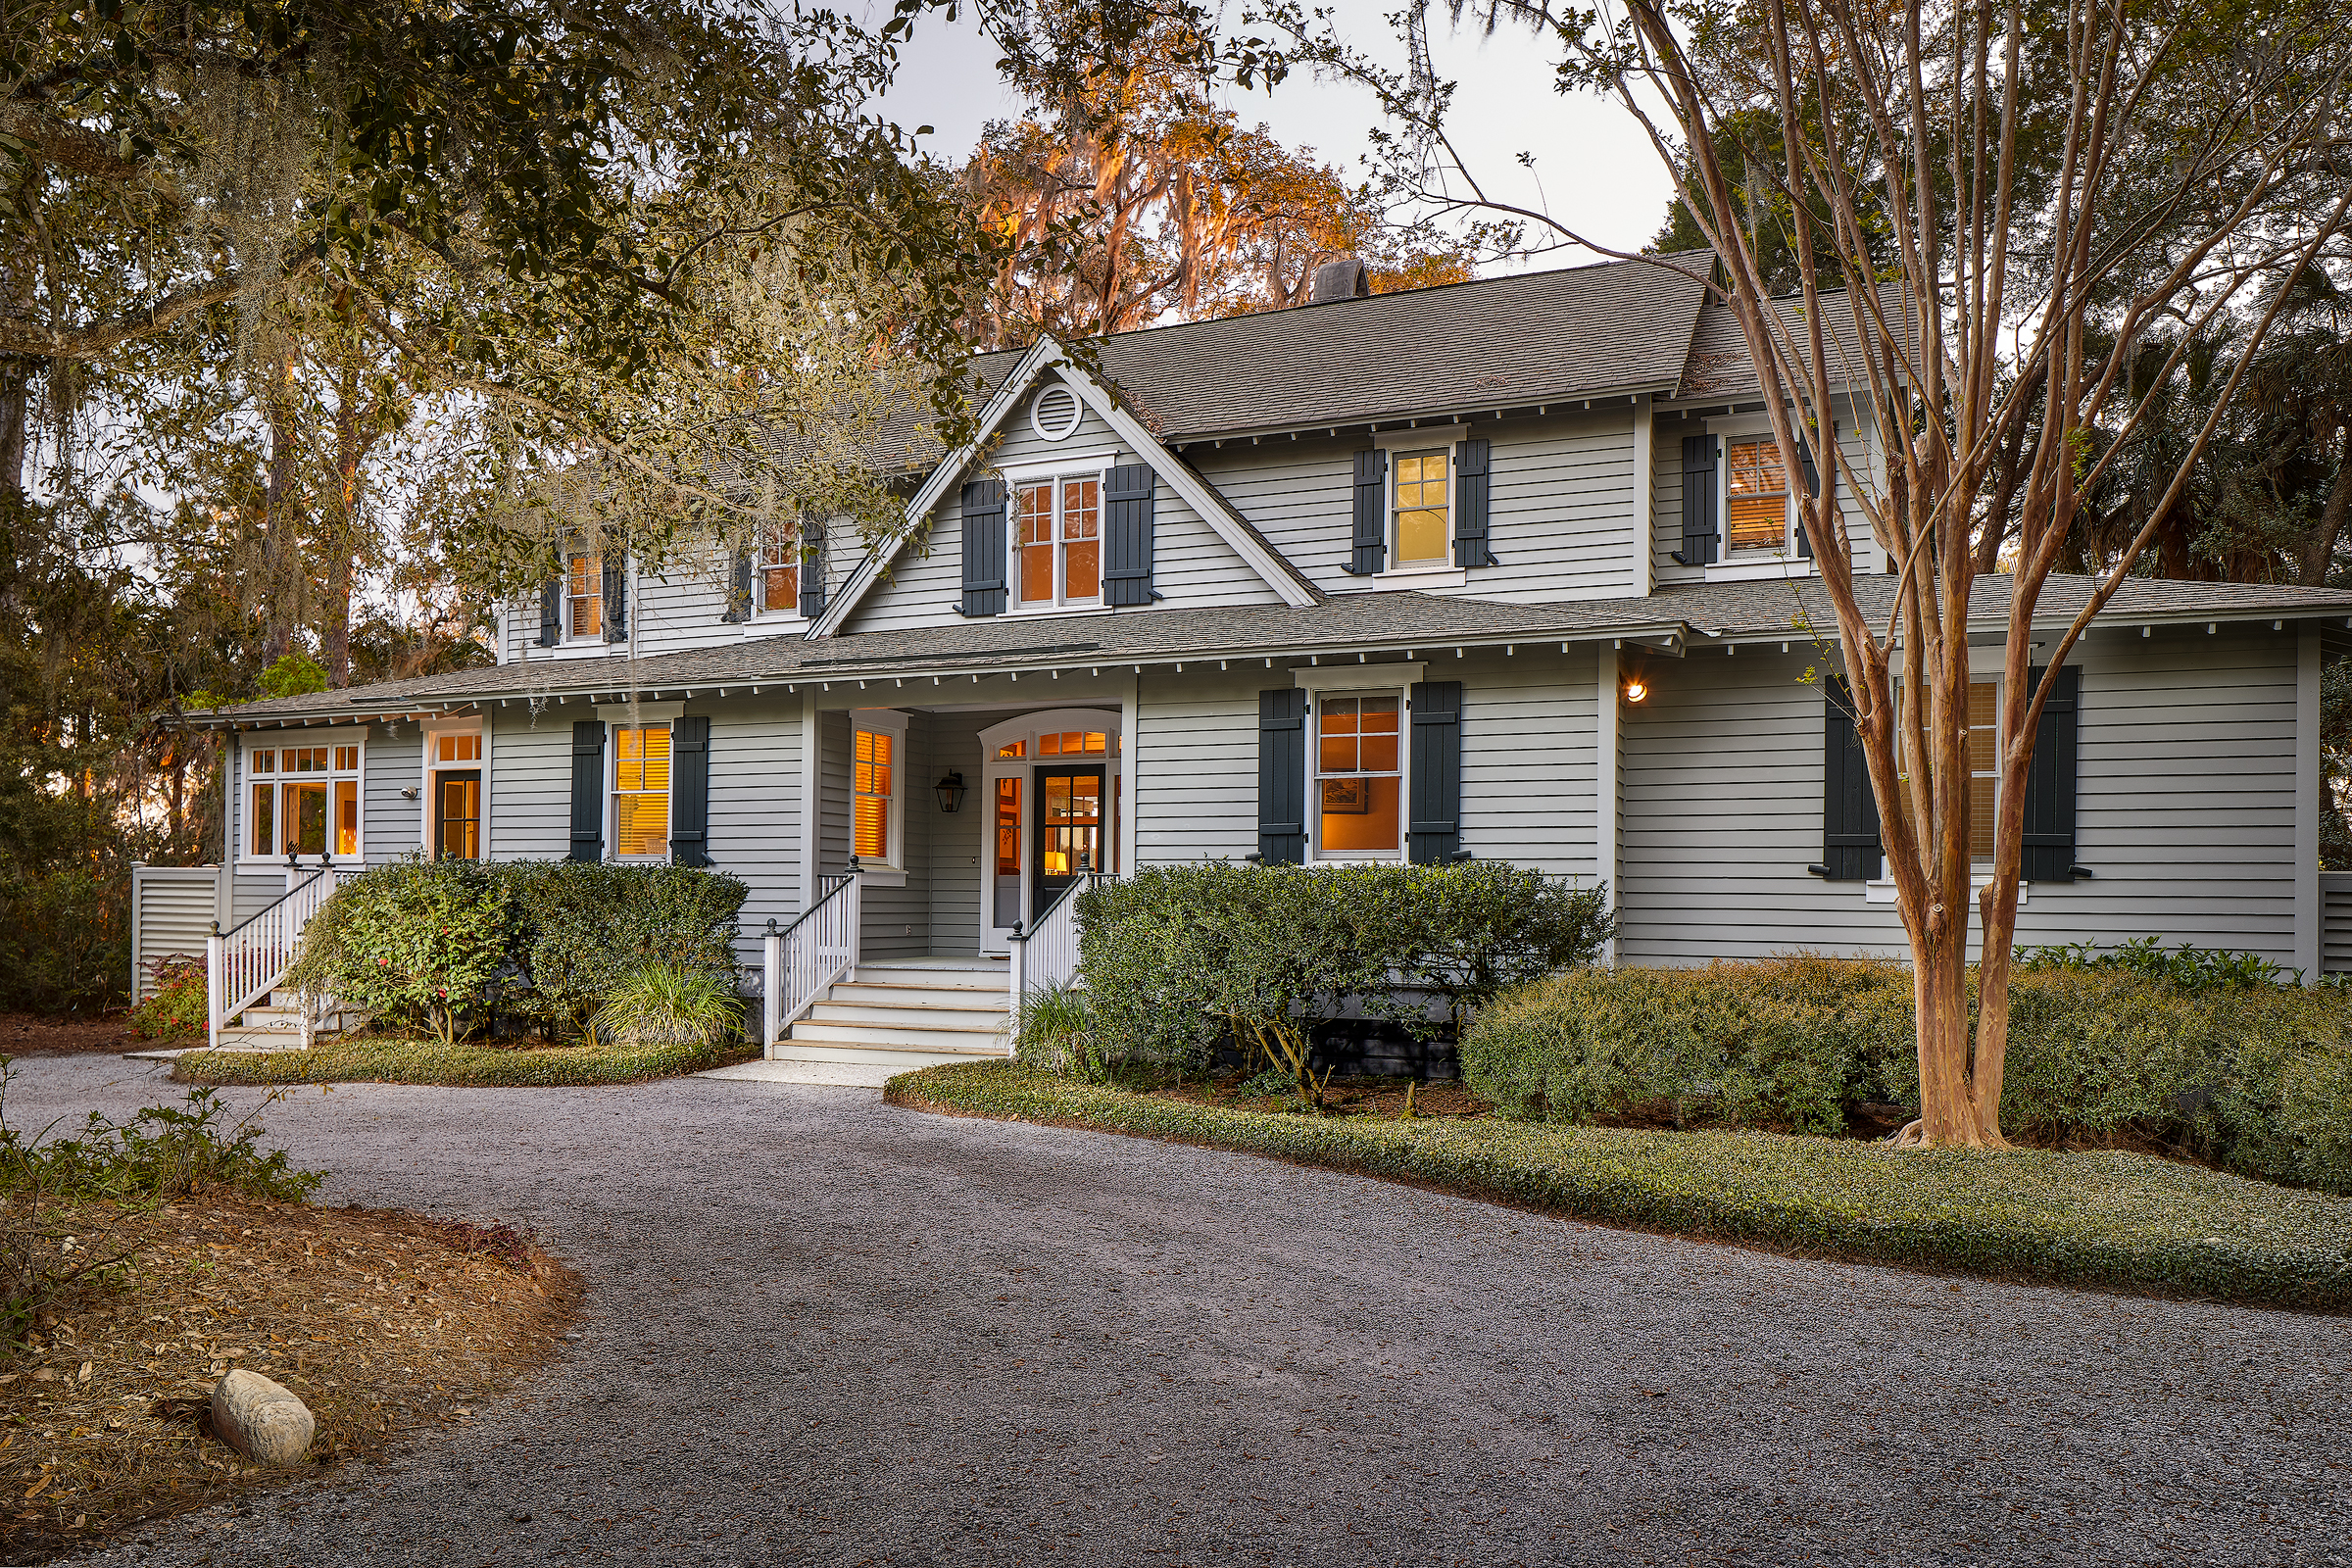 Beaufort SC Waterfront Homes for Sale & Real Estate | Spring